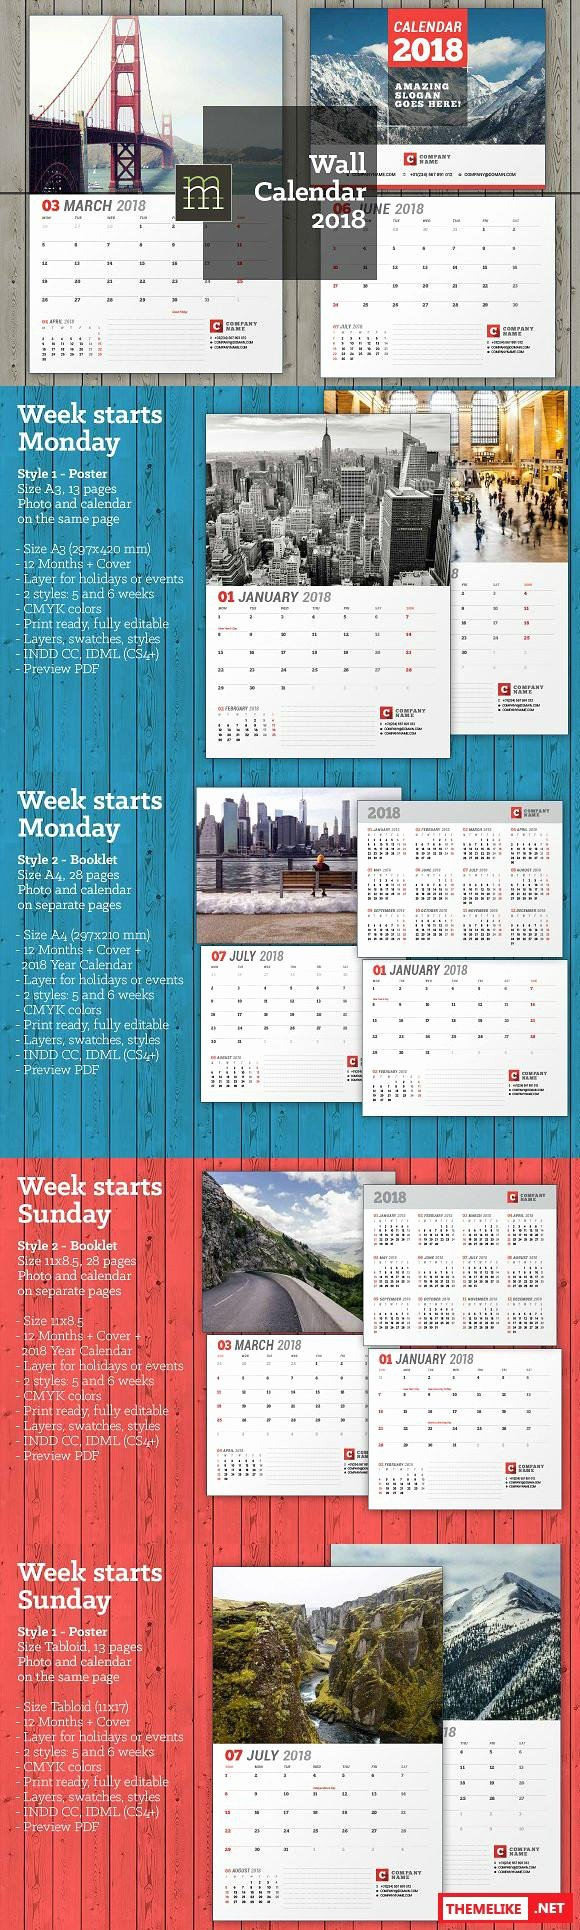 Creativemarket Wall Calendar 2018 Wc26 All